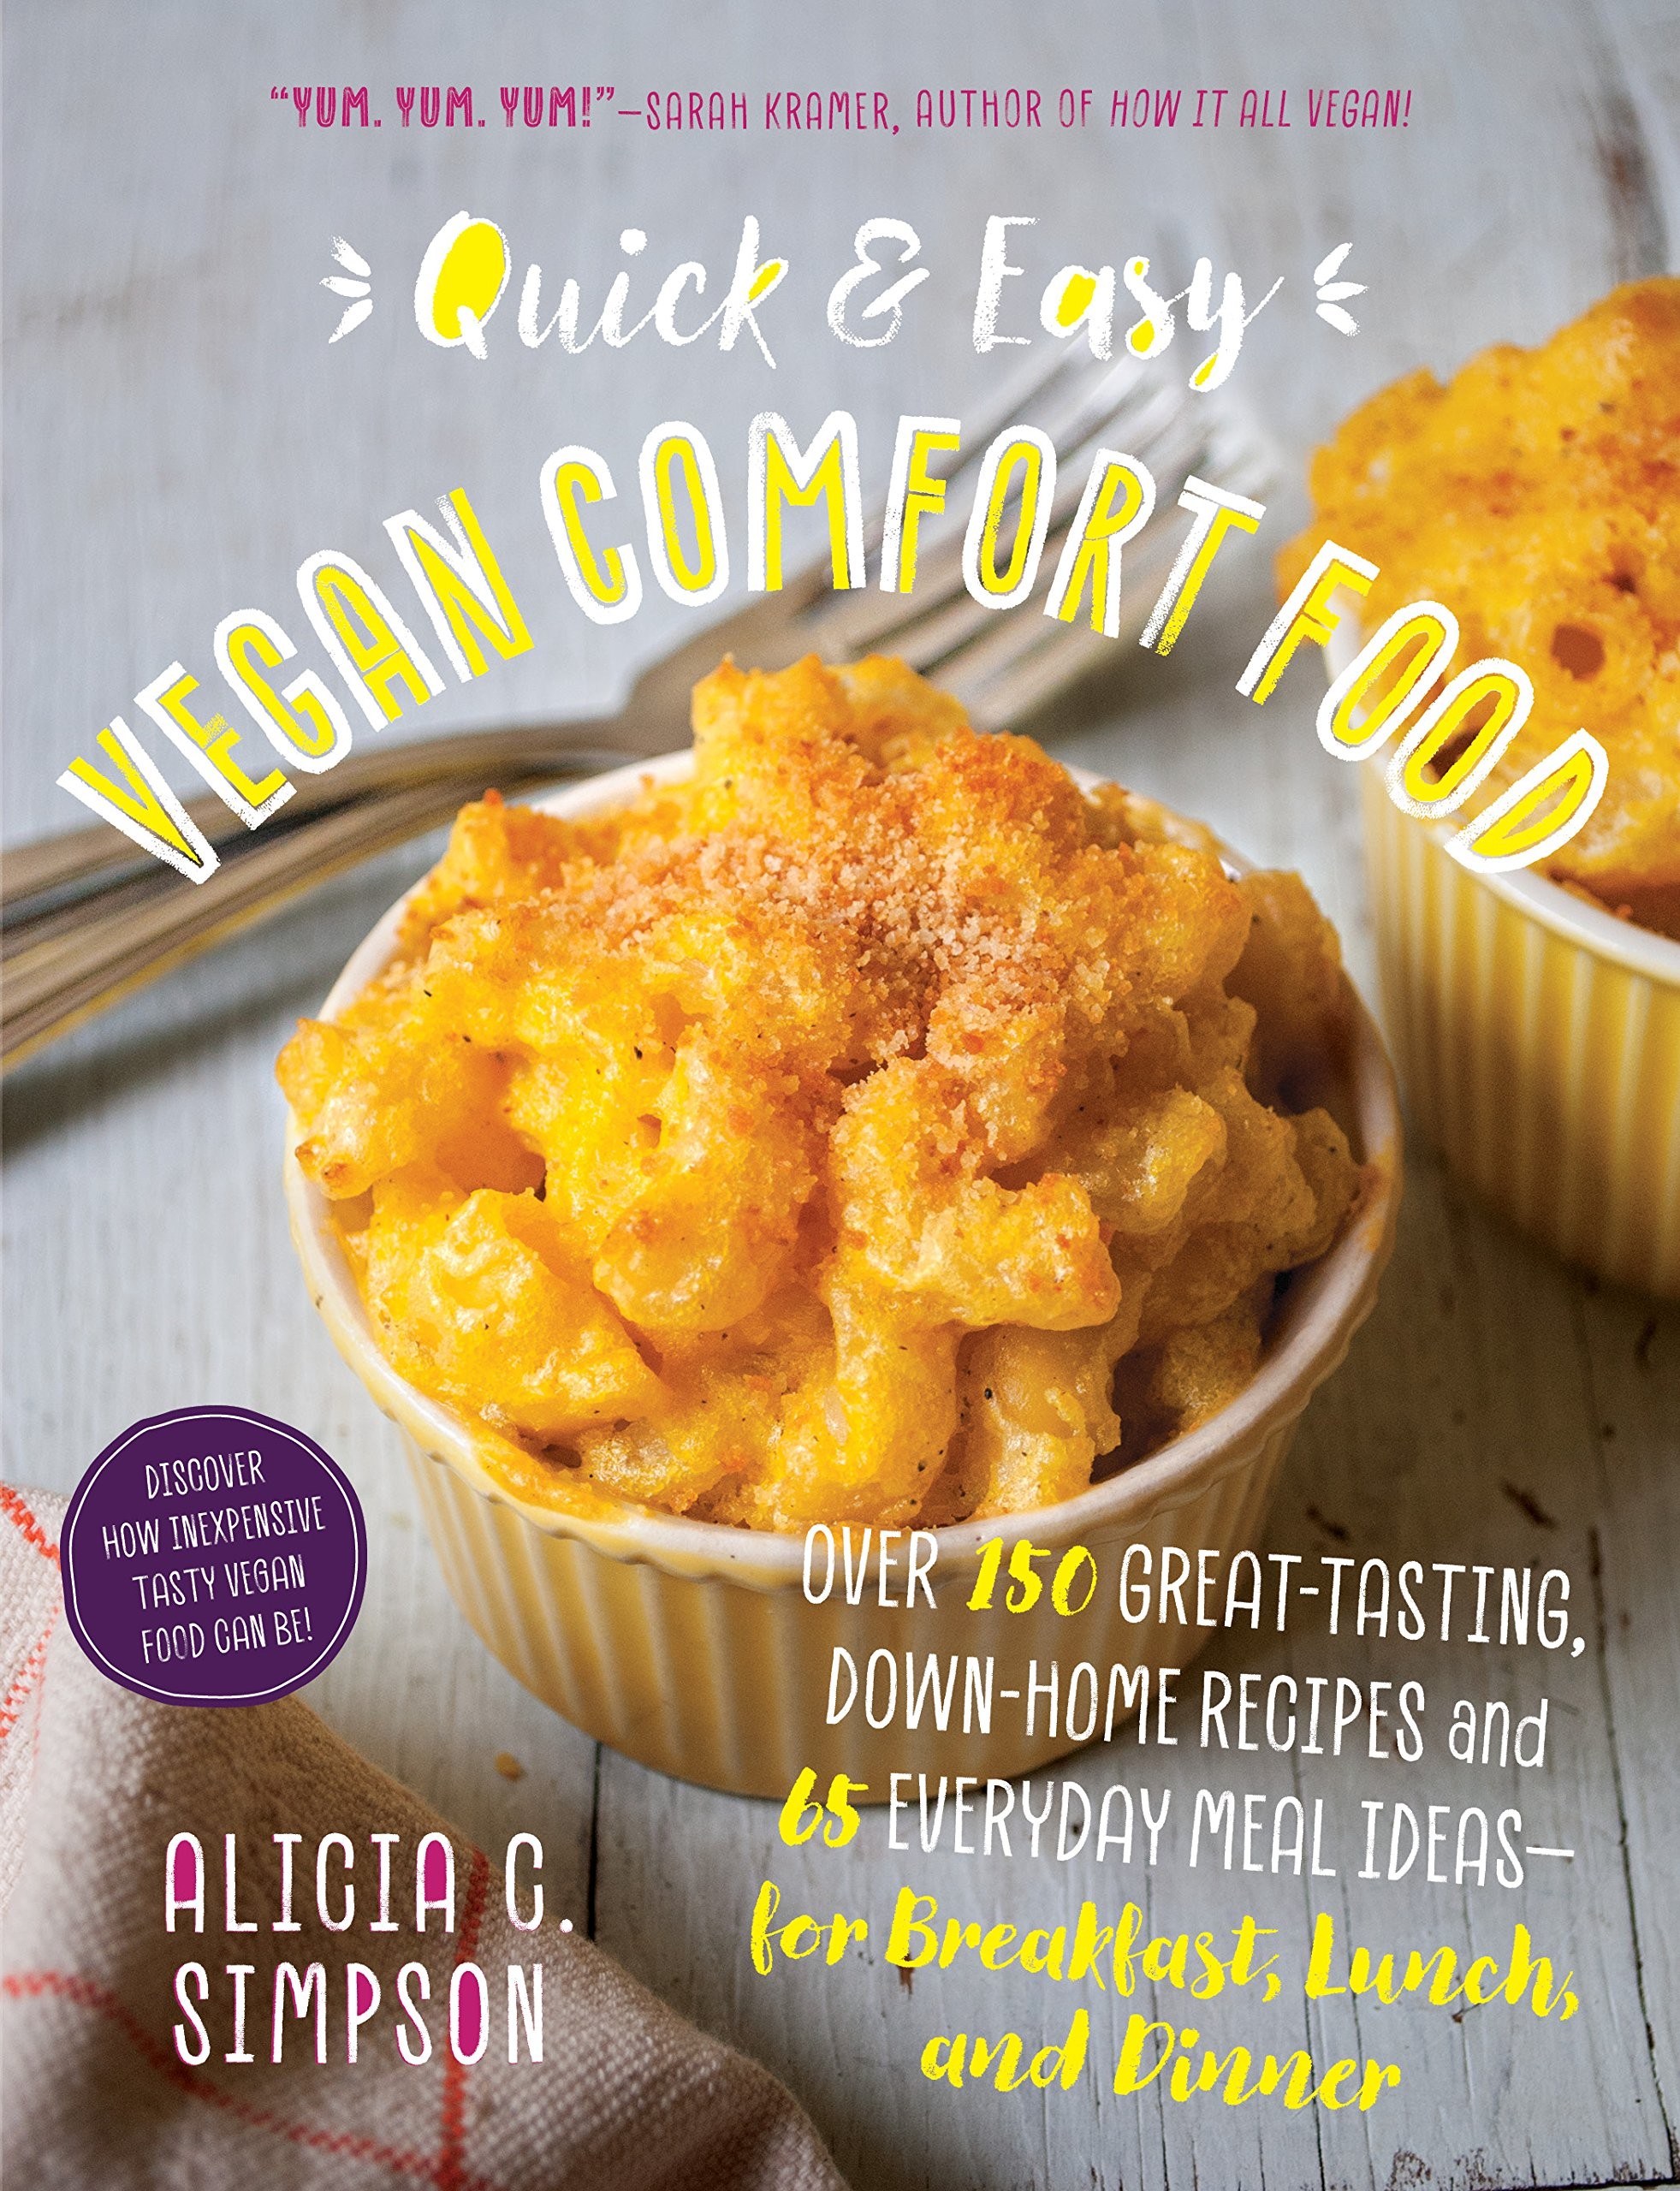 Quick and easy vegan comfort food 65 everyday meal ideas for quick and easy vegan comfort food 65 everyday meal ideas for breakfast lunch and dinner with over 150 great tasting down home recipes alicia c simpson forumfinder Images